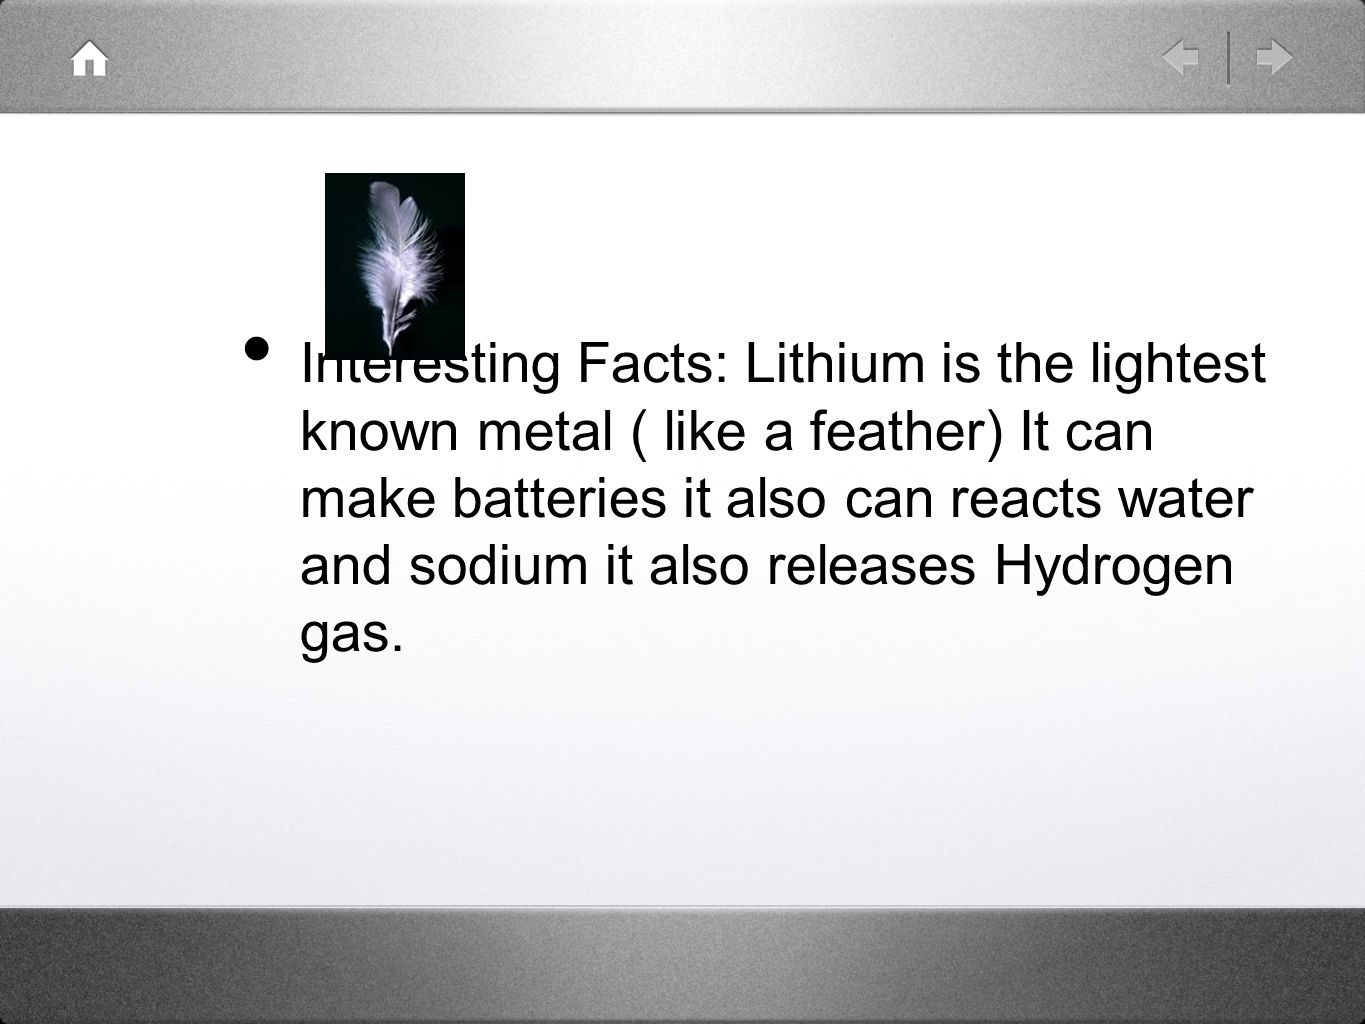 Interesting Facts: Lithium is the lightest known metal ( like a feather) It can make batteries it also can reacts water and sodium it also releases Hydrogen gas.